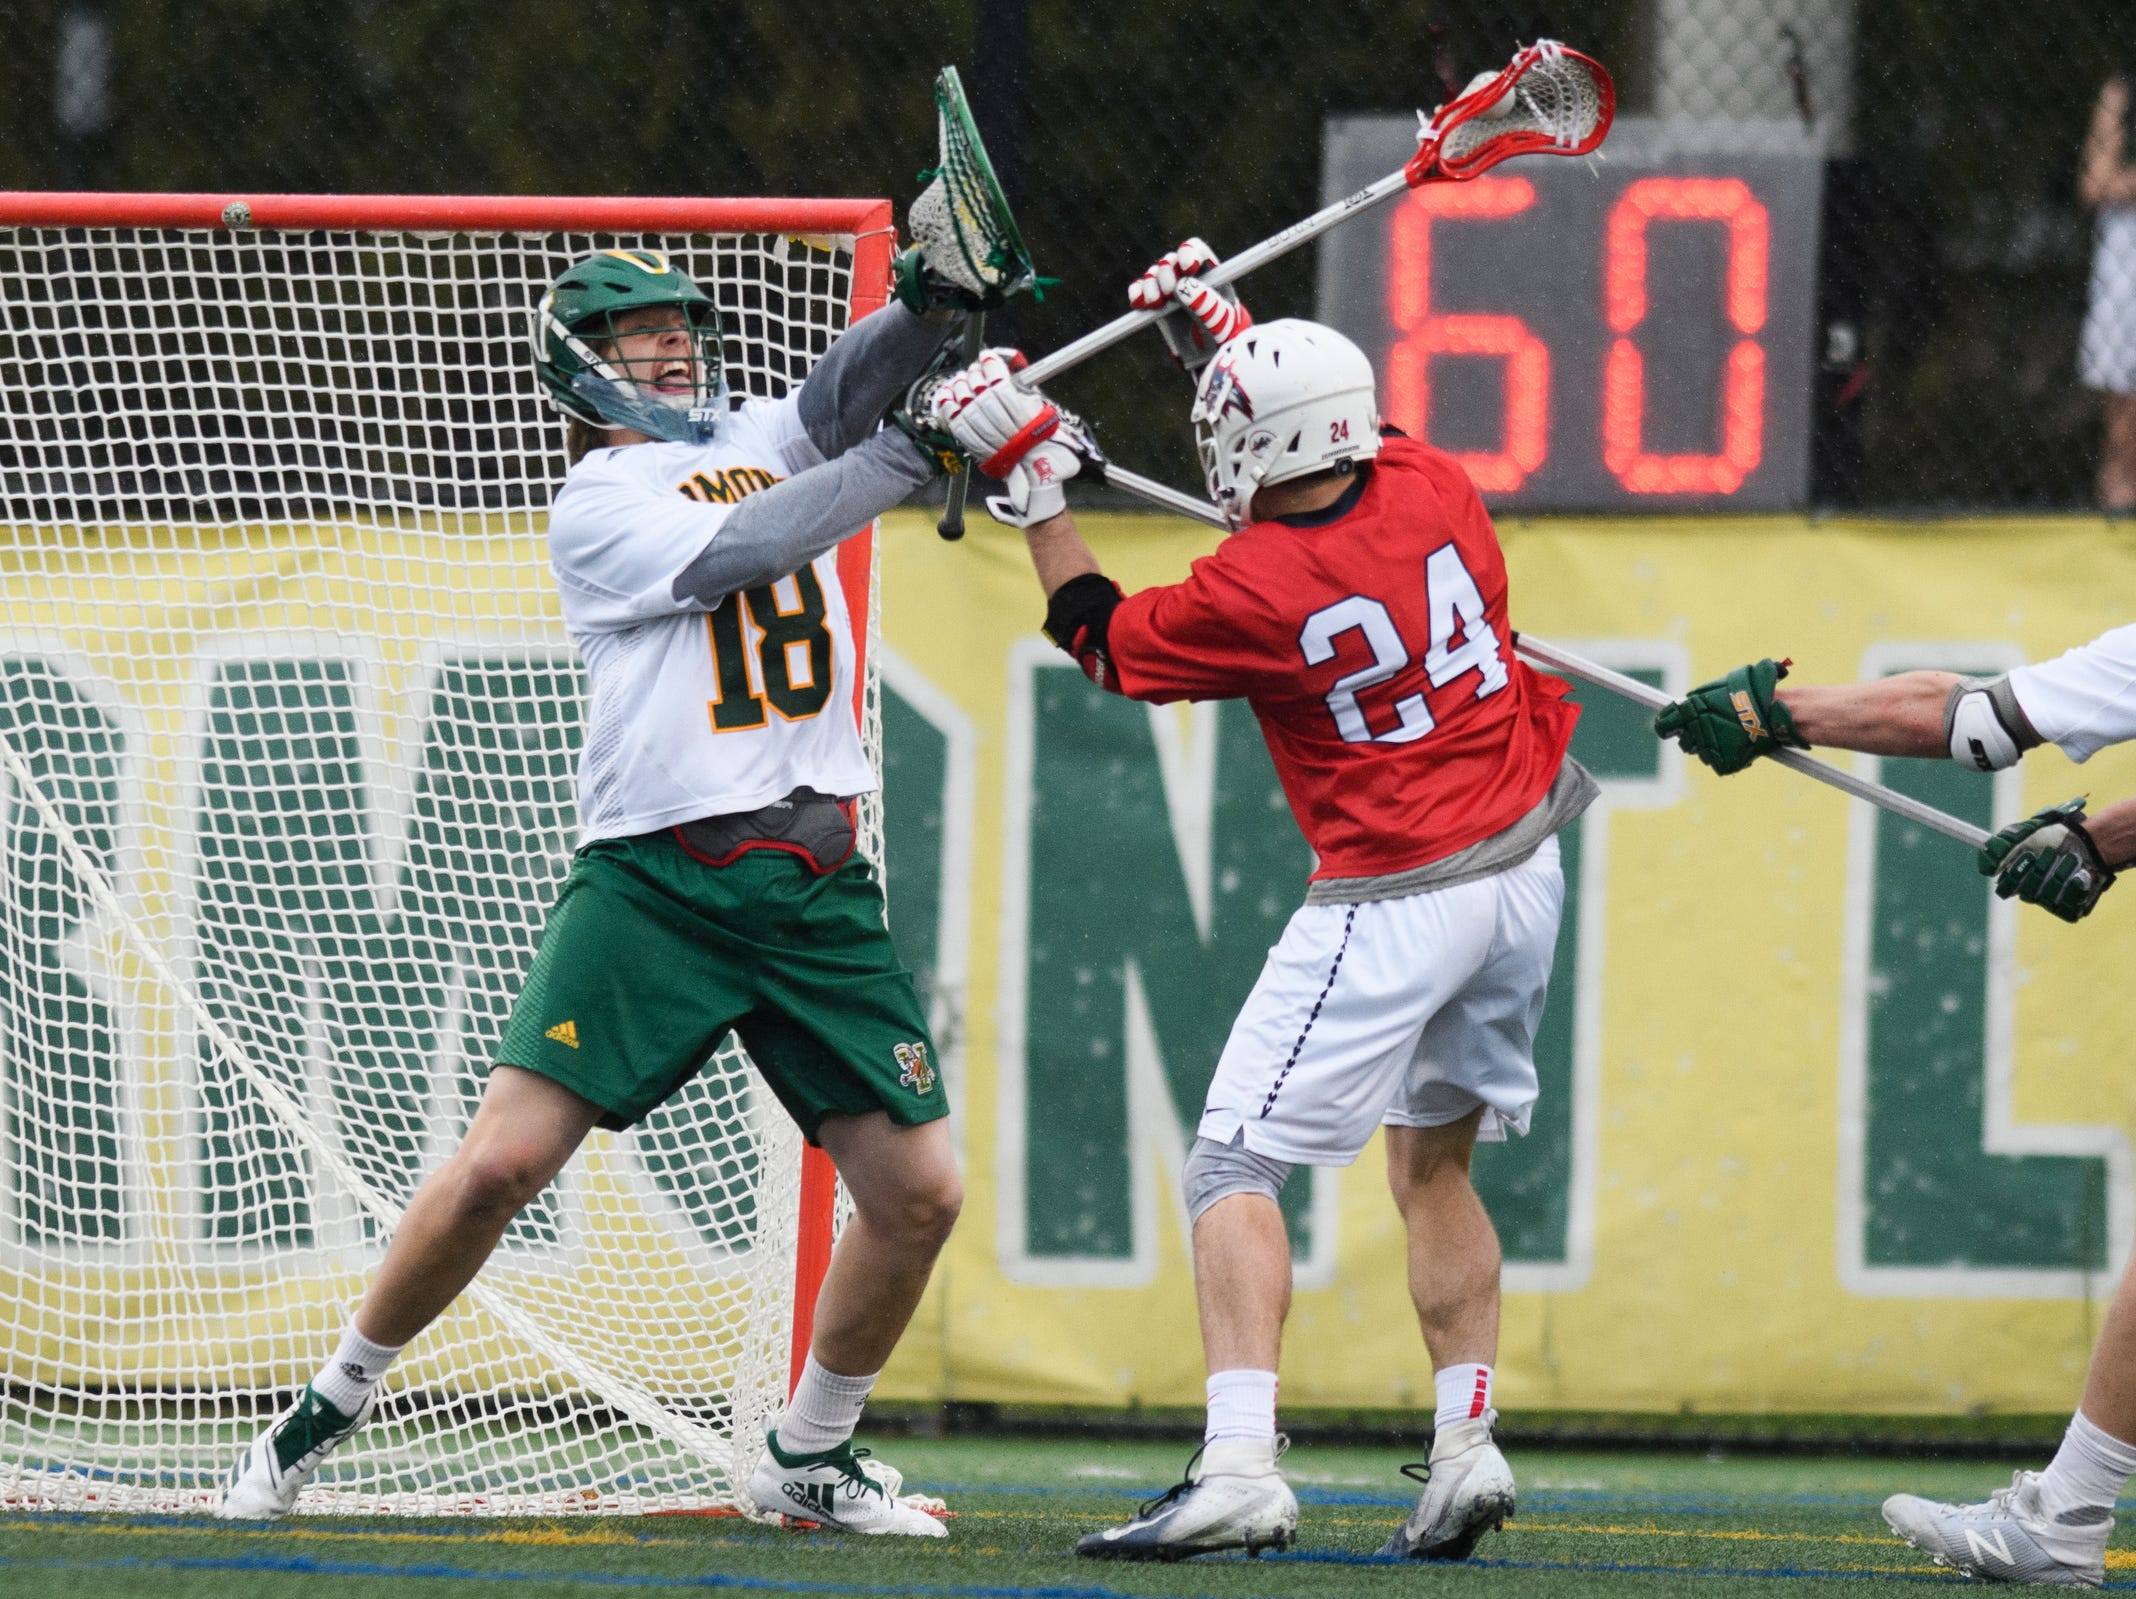 Vermont goalie Nick Washuta (18) tries to save a shot by Stony Brook's Tom Dugan (24) during the men's lacrosse game between the Stony Brook Sea Wolves and the Vermont Catamounts at Virtue Field on Saturday afternoon April 20, 2019 in Burlington, Vermont.